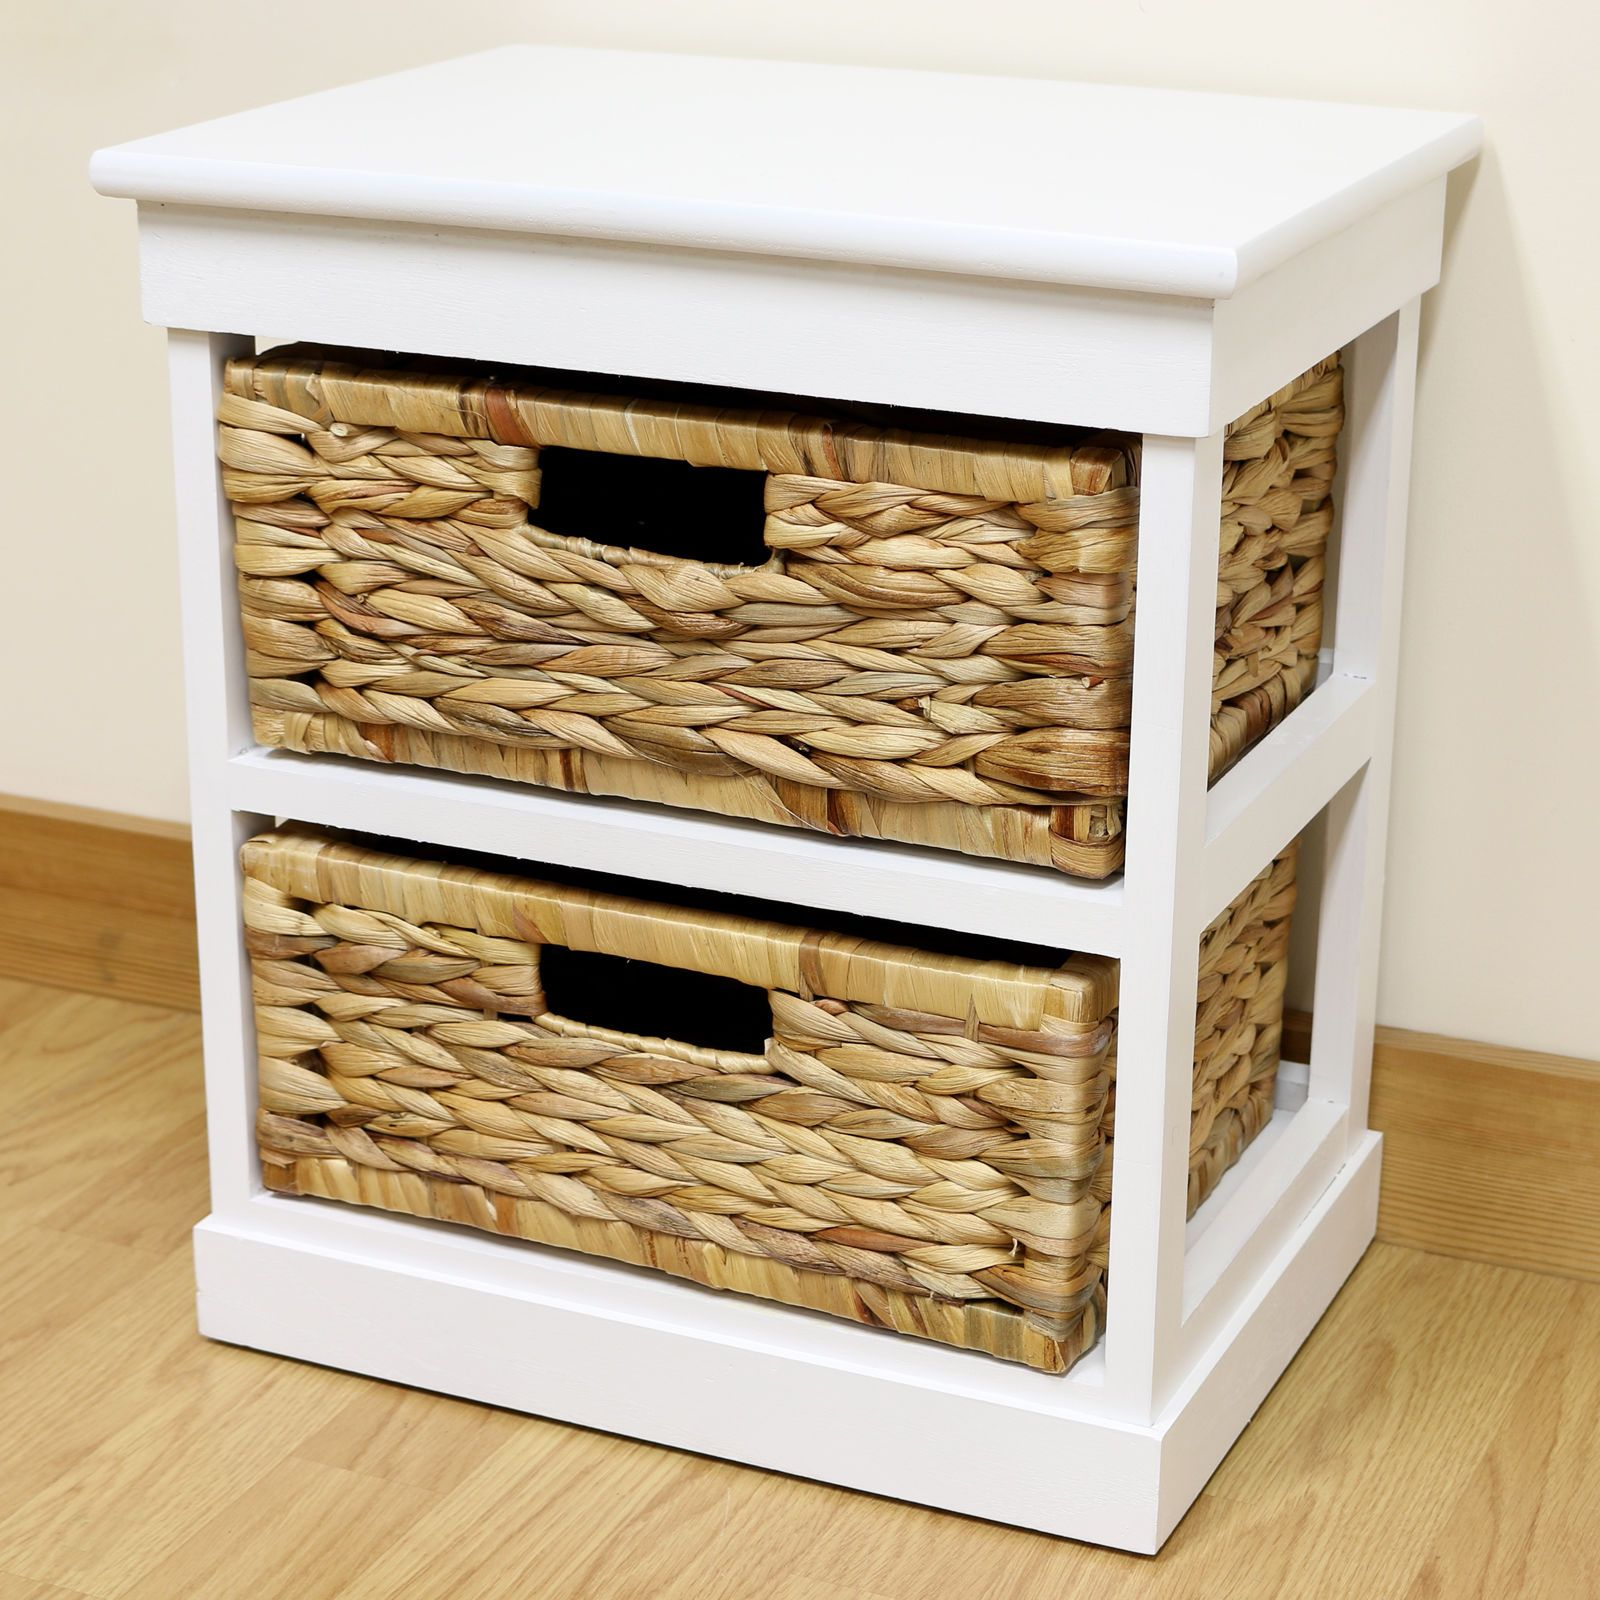 Kitchen Basket Storage Amazing Gadgets White 2 Drawer Bedside Cabinet Home Unit